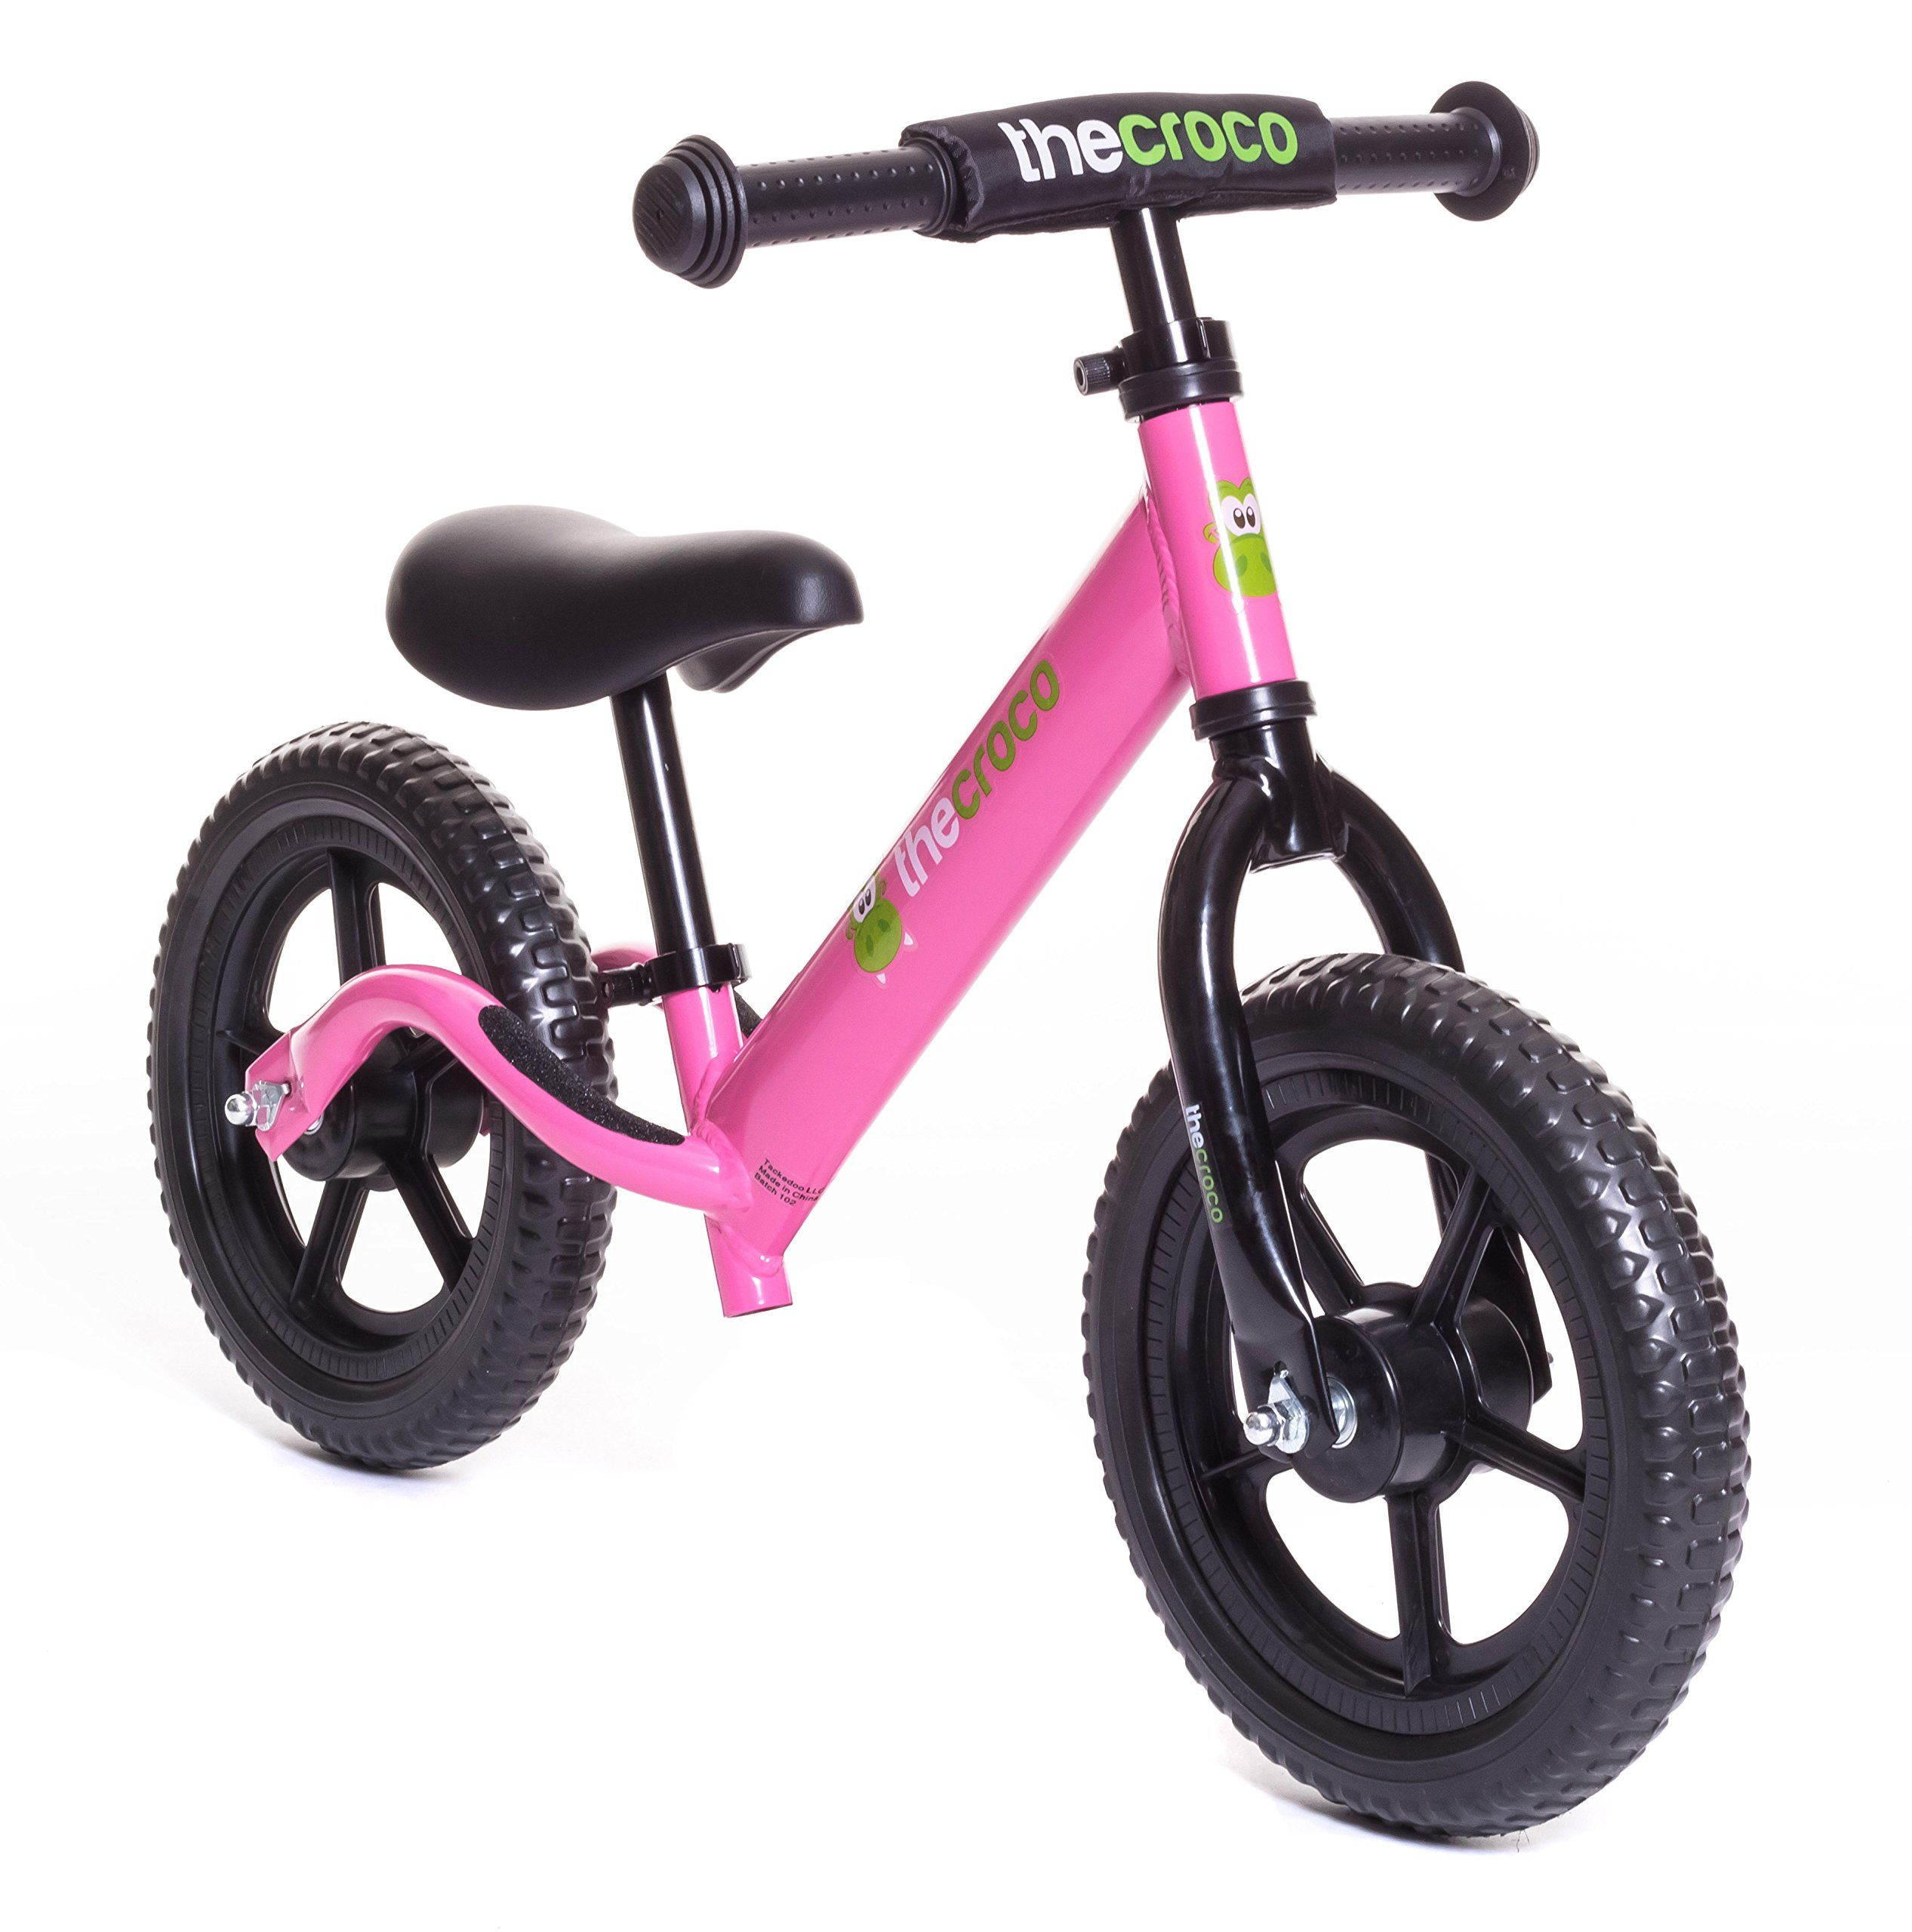 TheCroco - LIGHTEST Aluminum Balance Bike, (4.3 lbs), Ages 1.5 to 5 ...